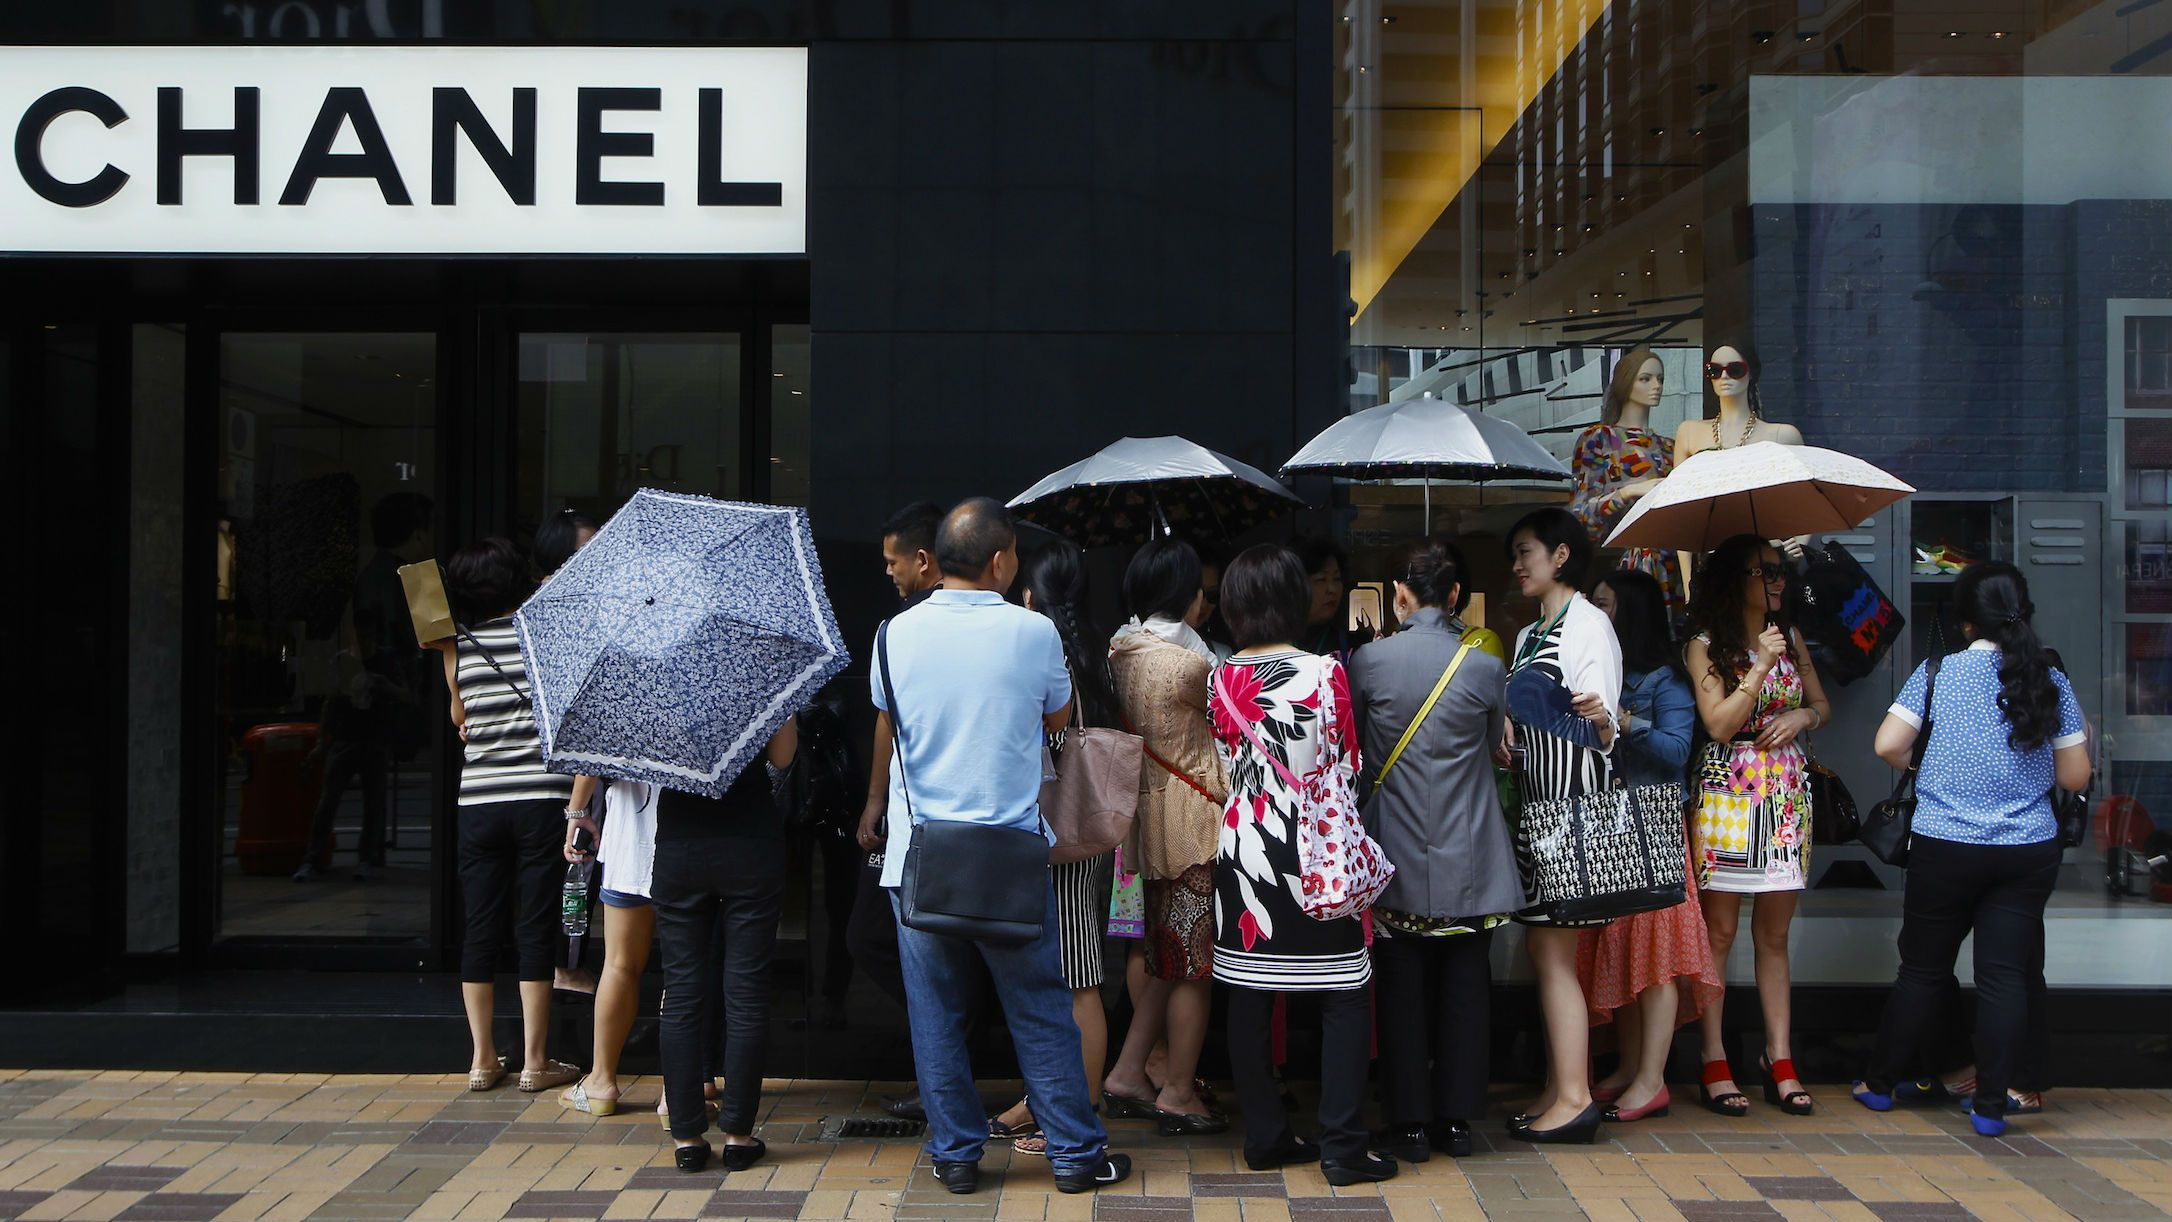 Mainland Chinese tourists wait outside a Chanel store at Hong Kong's Tsim Sha Tsui shopping district October 1, 2014, with part of it being blocked by protesters.